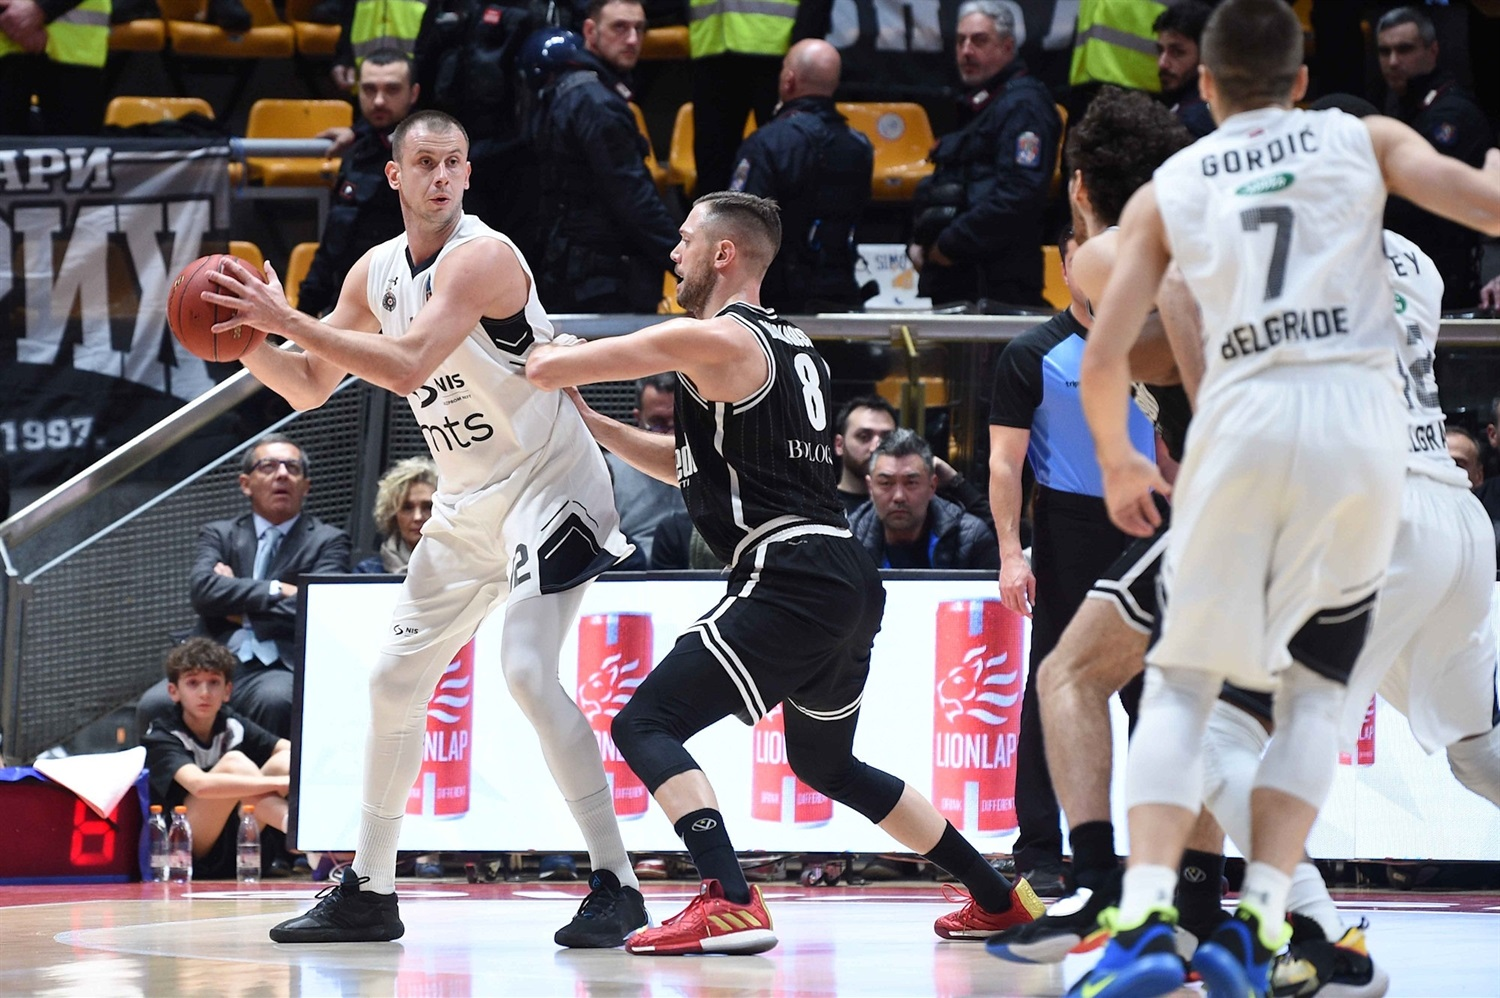 Novica Velickovic - Partizan NIS Belgrade (photo Massimo Ceretti - Virtus) - EC19